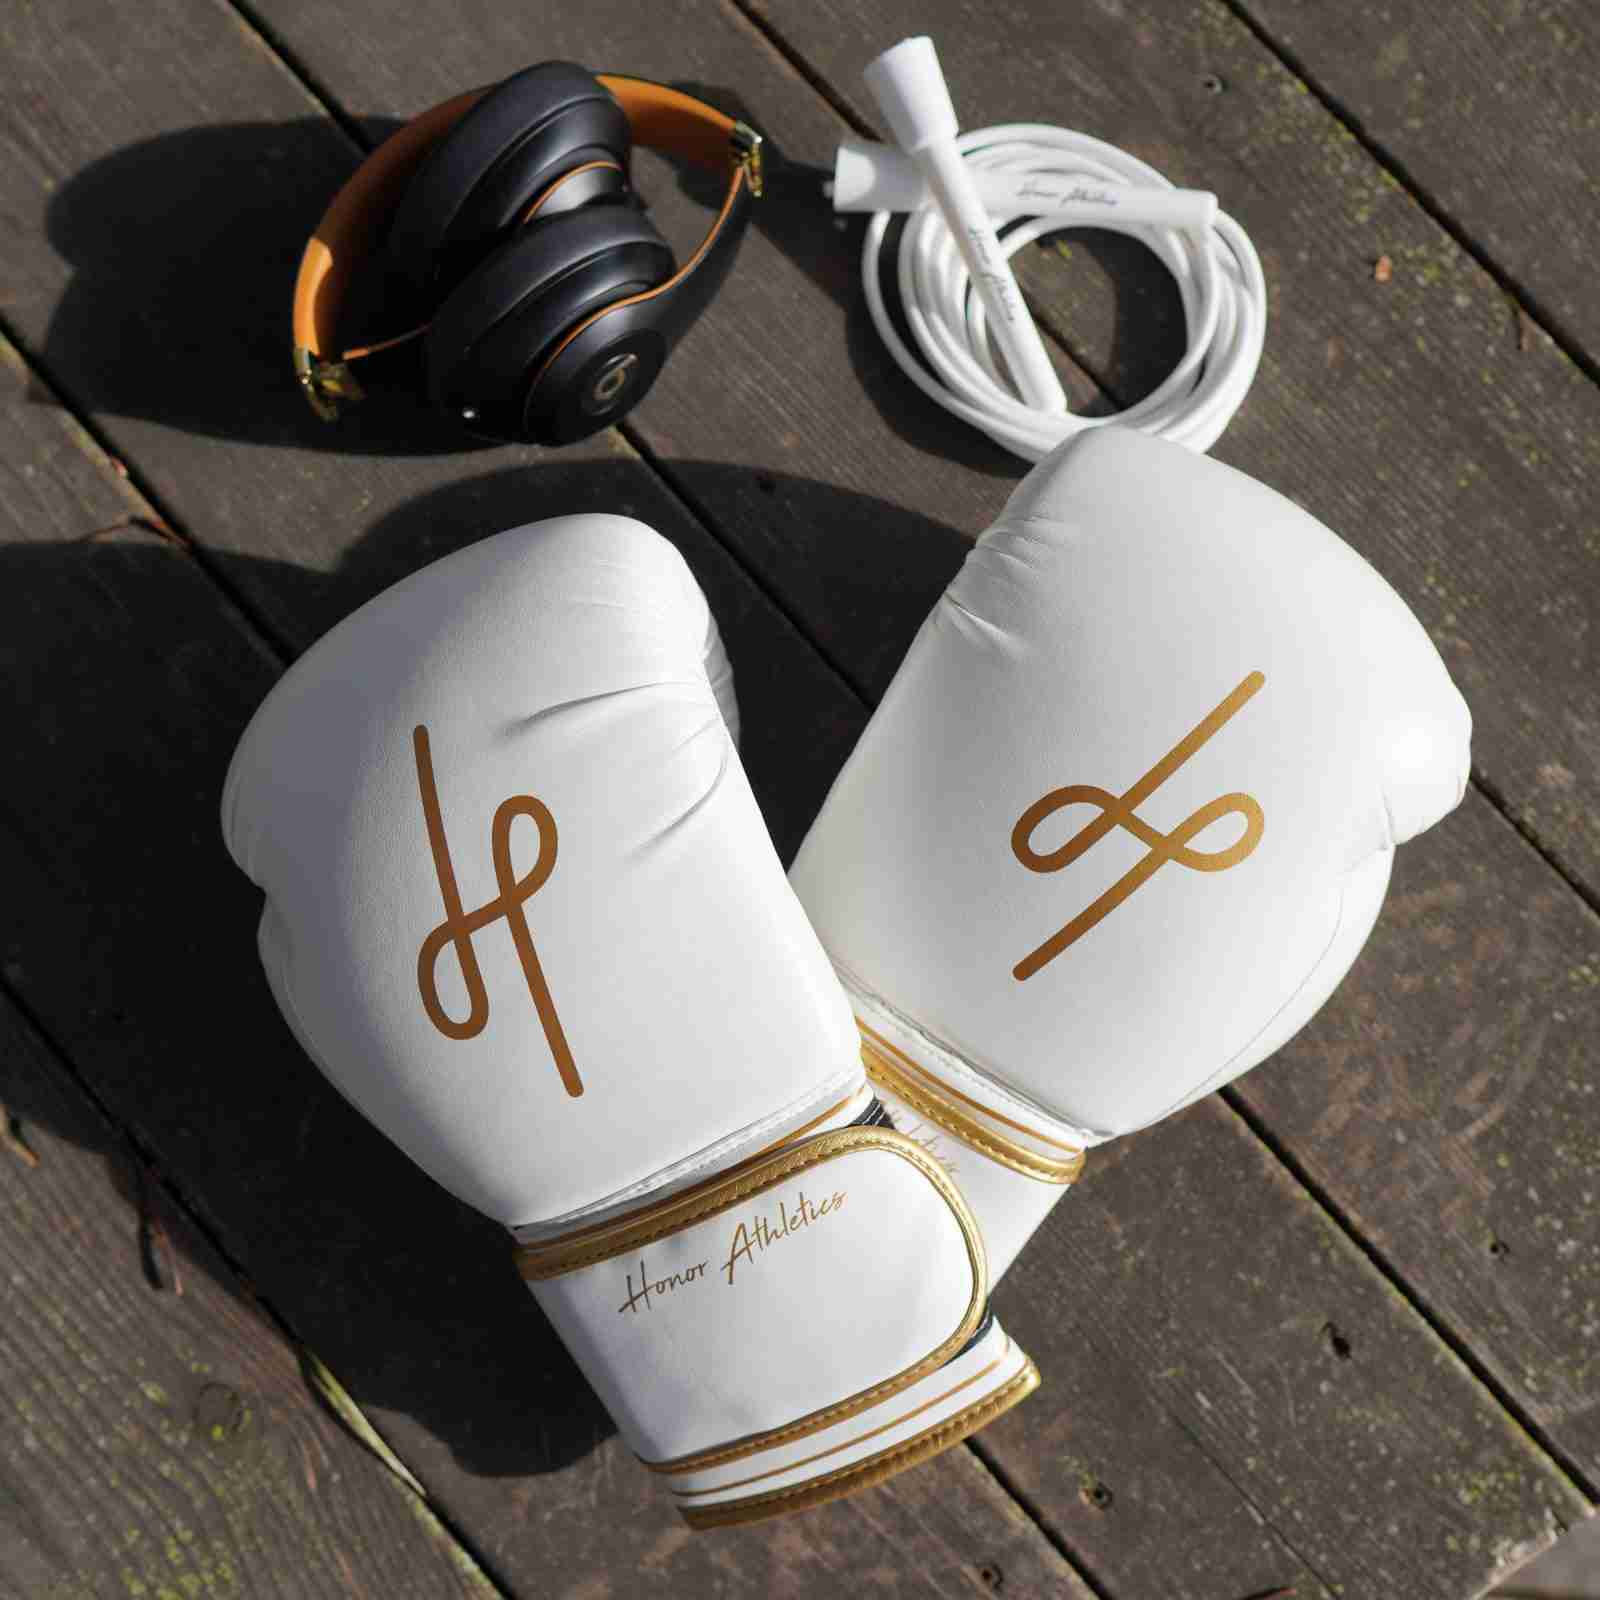 Honor Athletics Gold Boxing Gloves